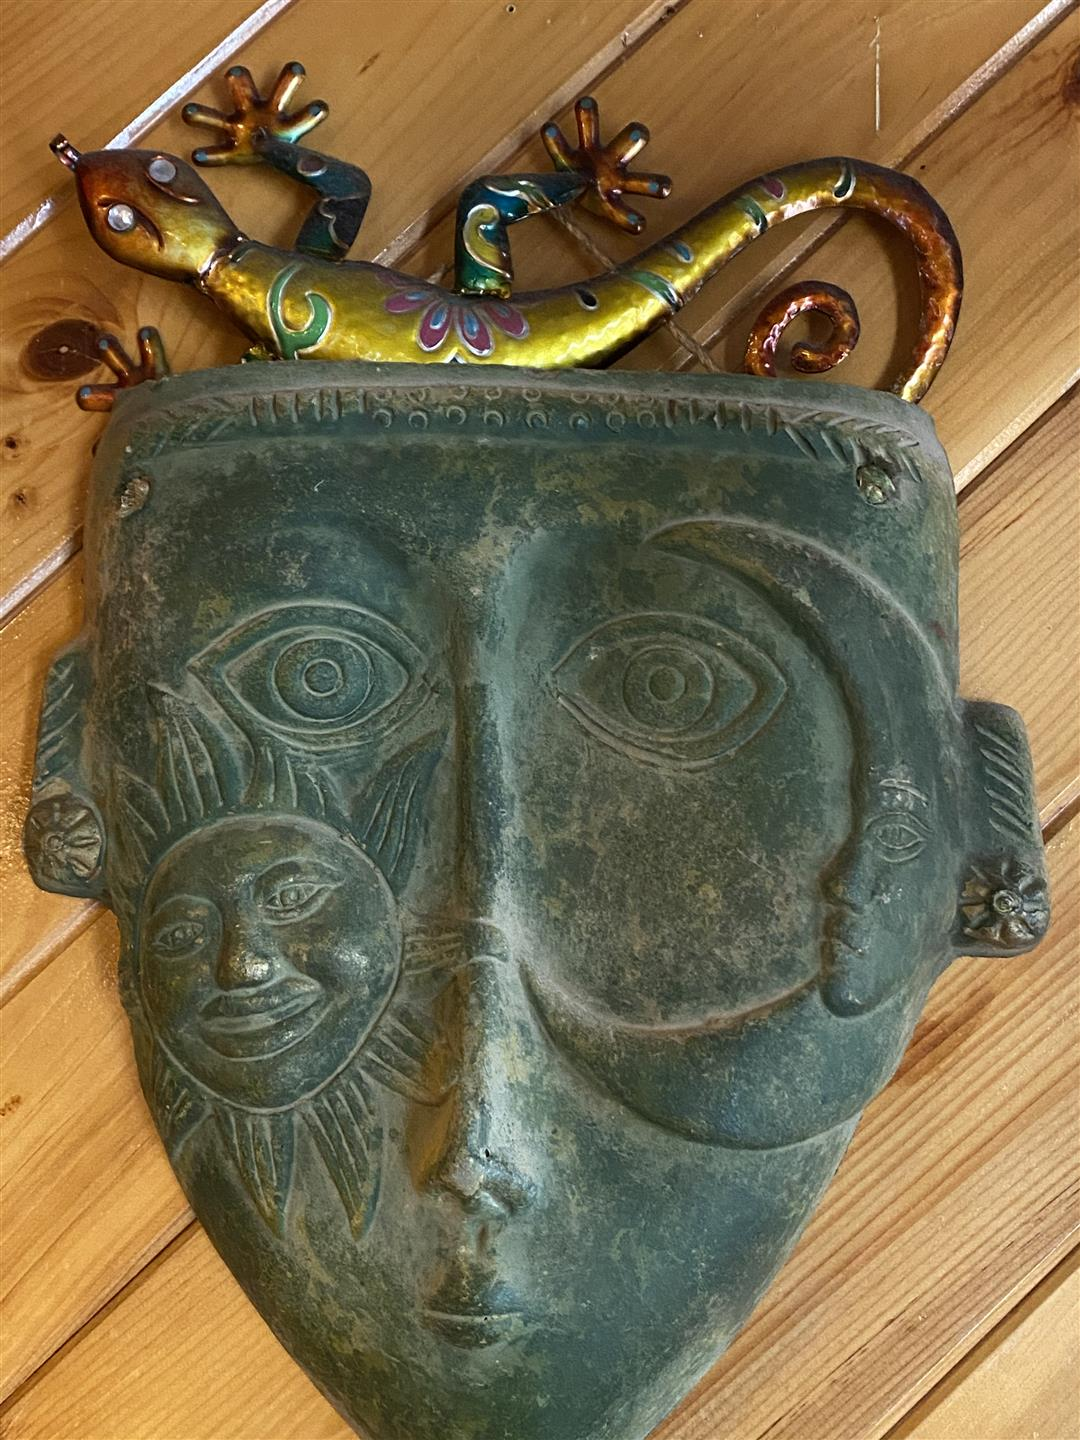 tribal mask and metal lizard decoration hanging on wall